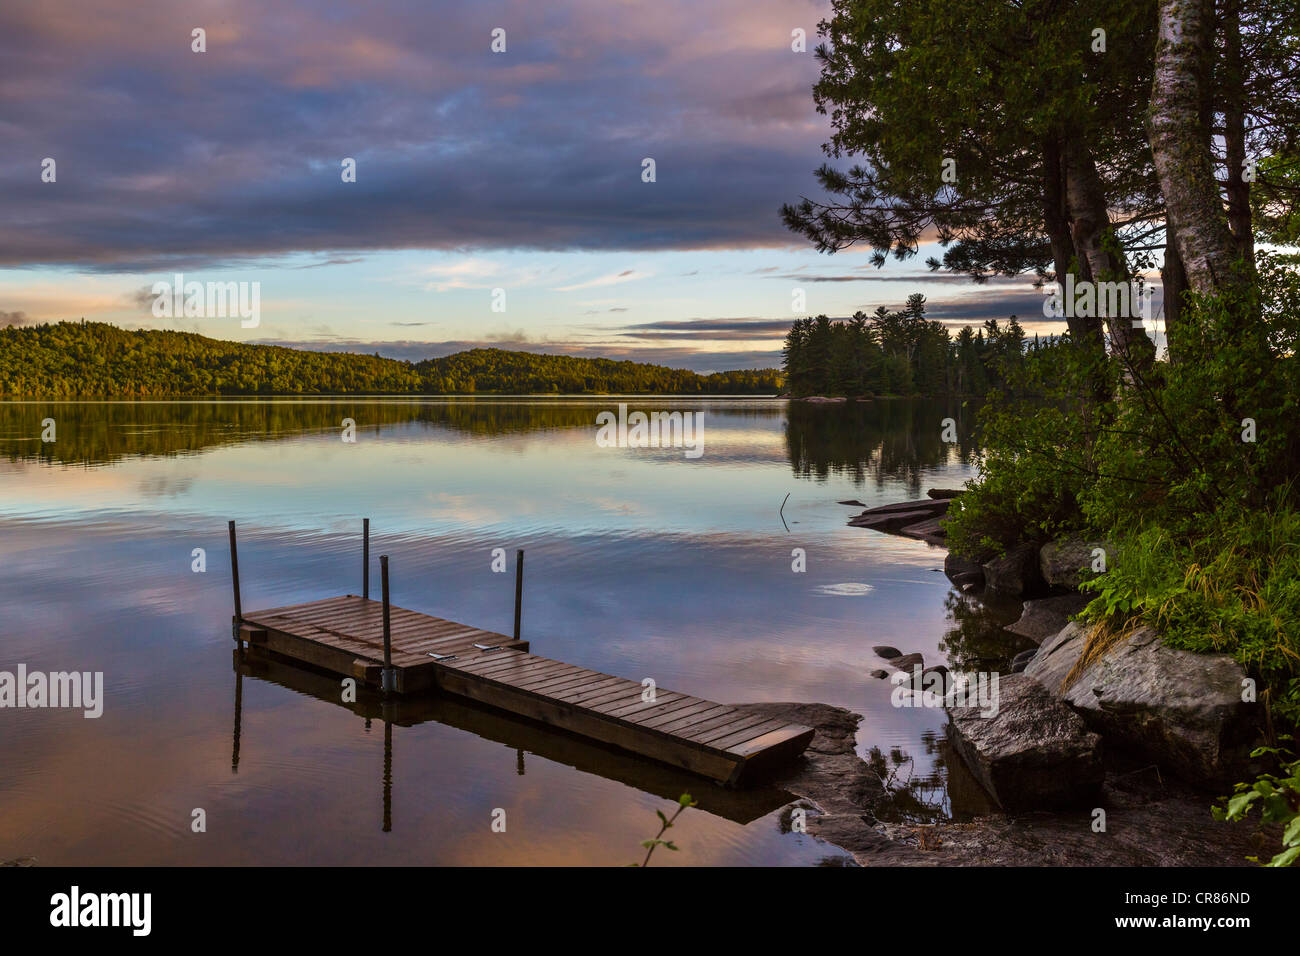 Lakefront at sunset at the Killarney Lodge resort, Lake of Two Rivers, Algonquin Park, Ontario, Canada - Stock Image